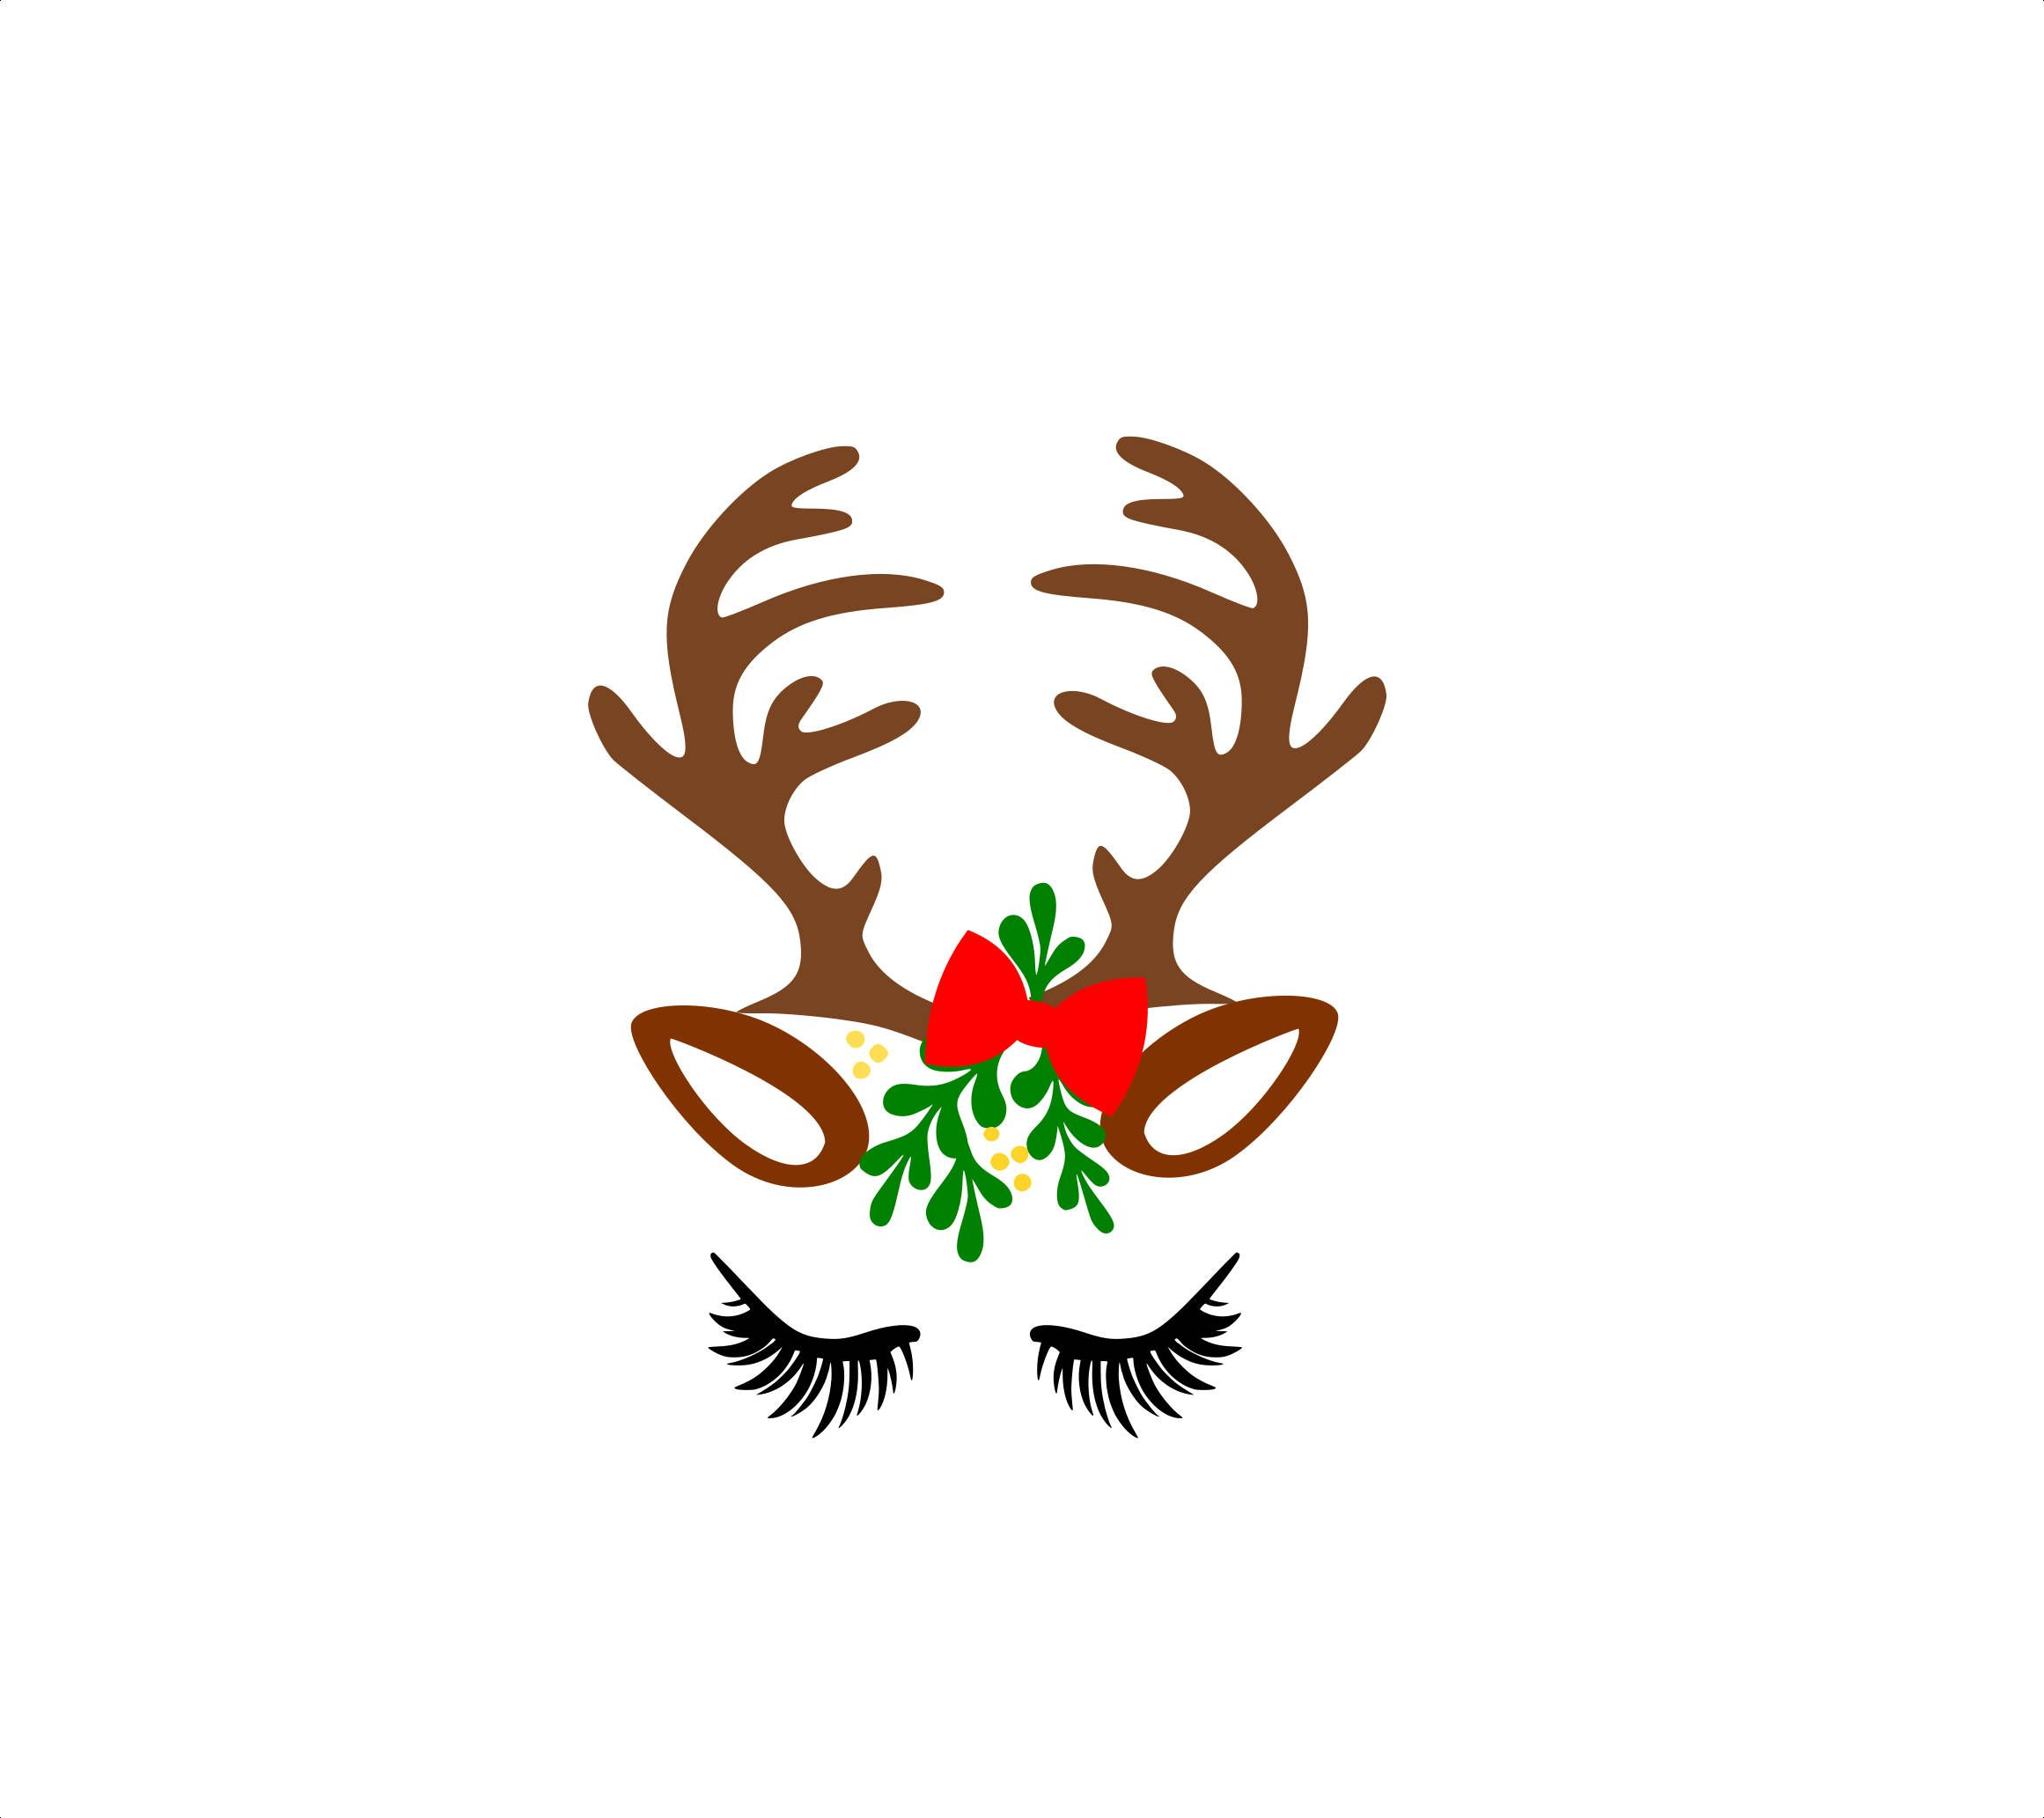 Reindeer face svg, Reindeer svg files, Christmas reindeer.